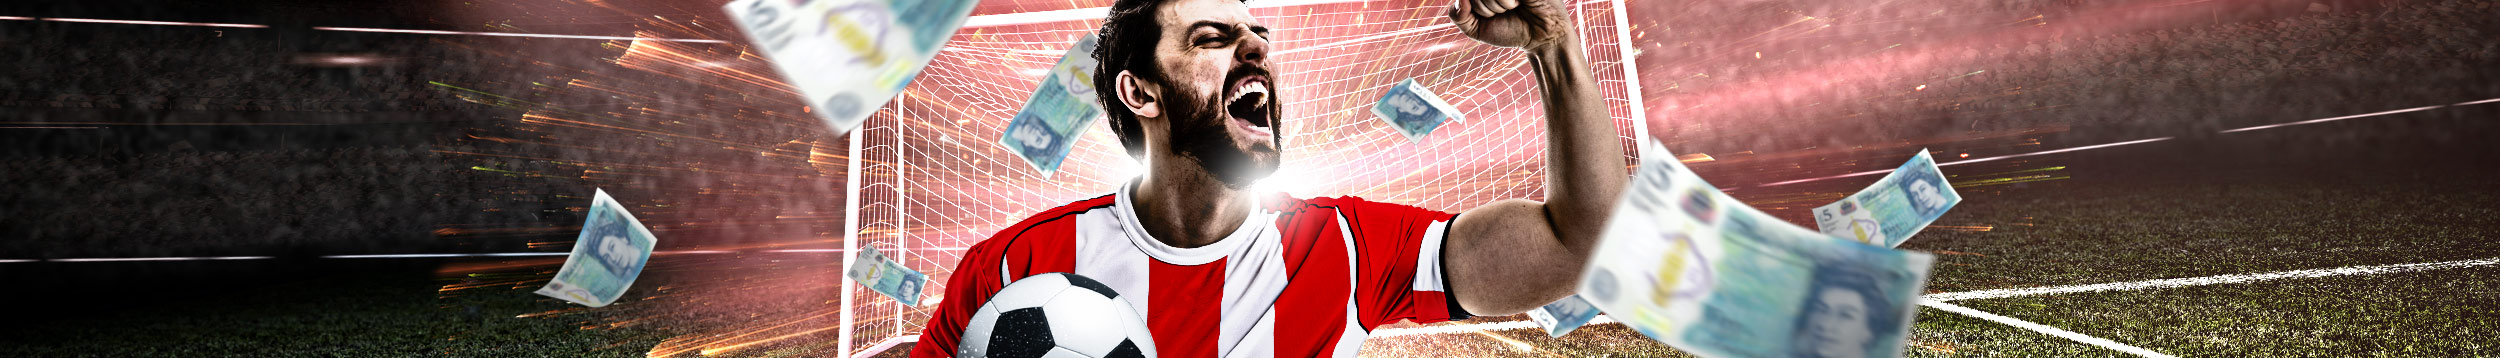 redbet Goal Bonus is back!